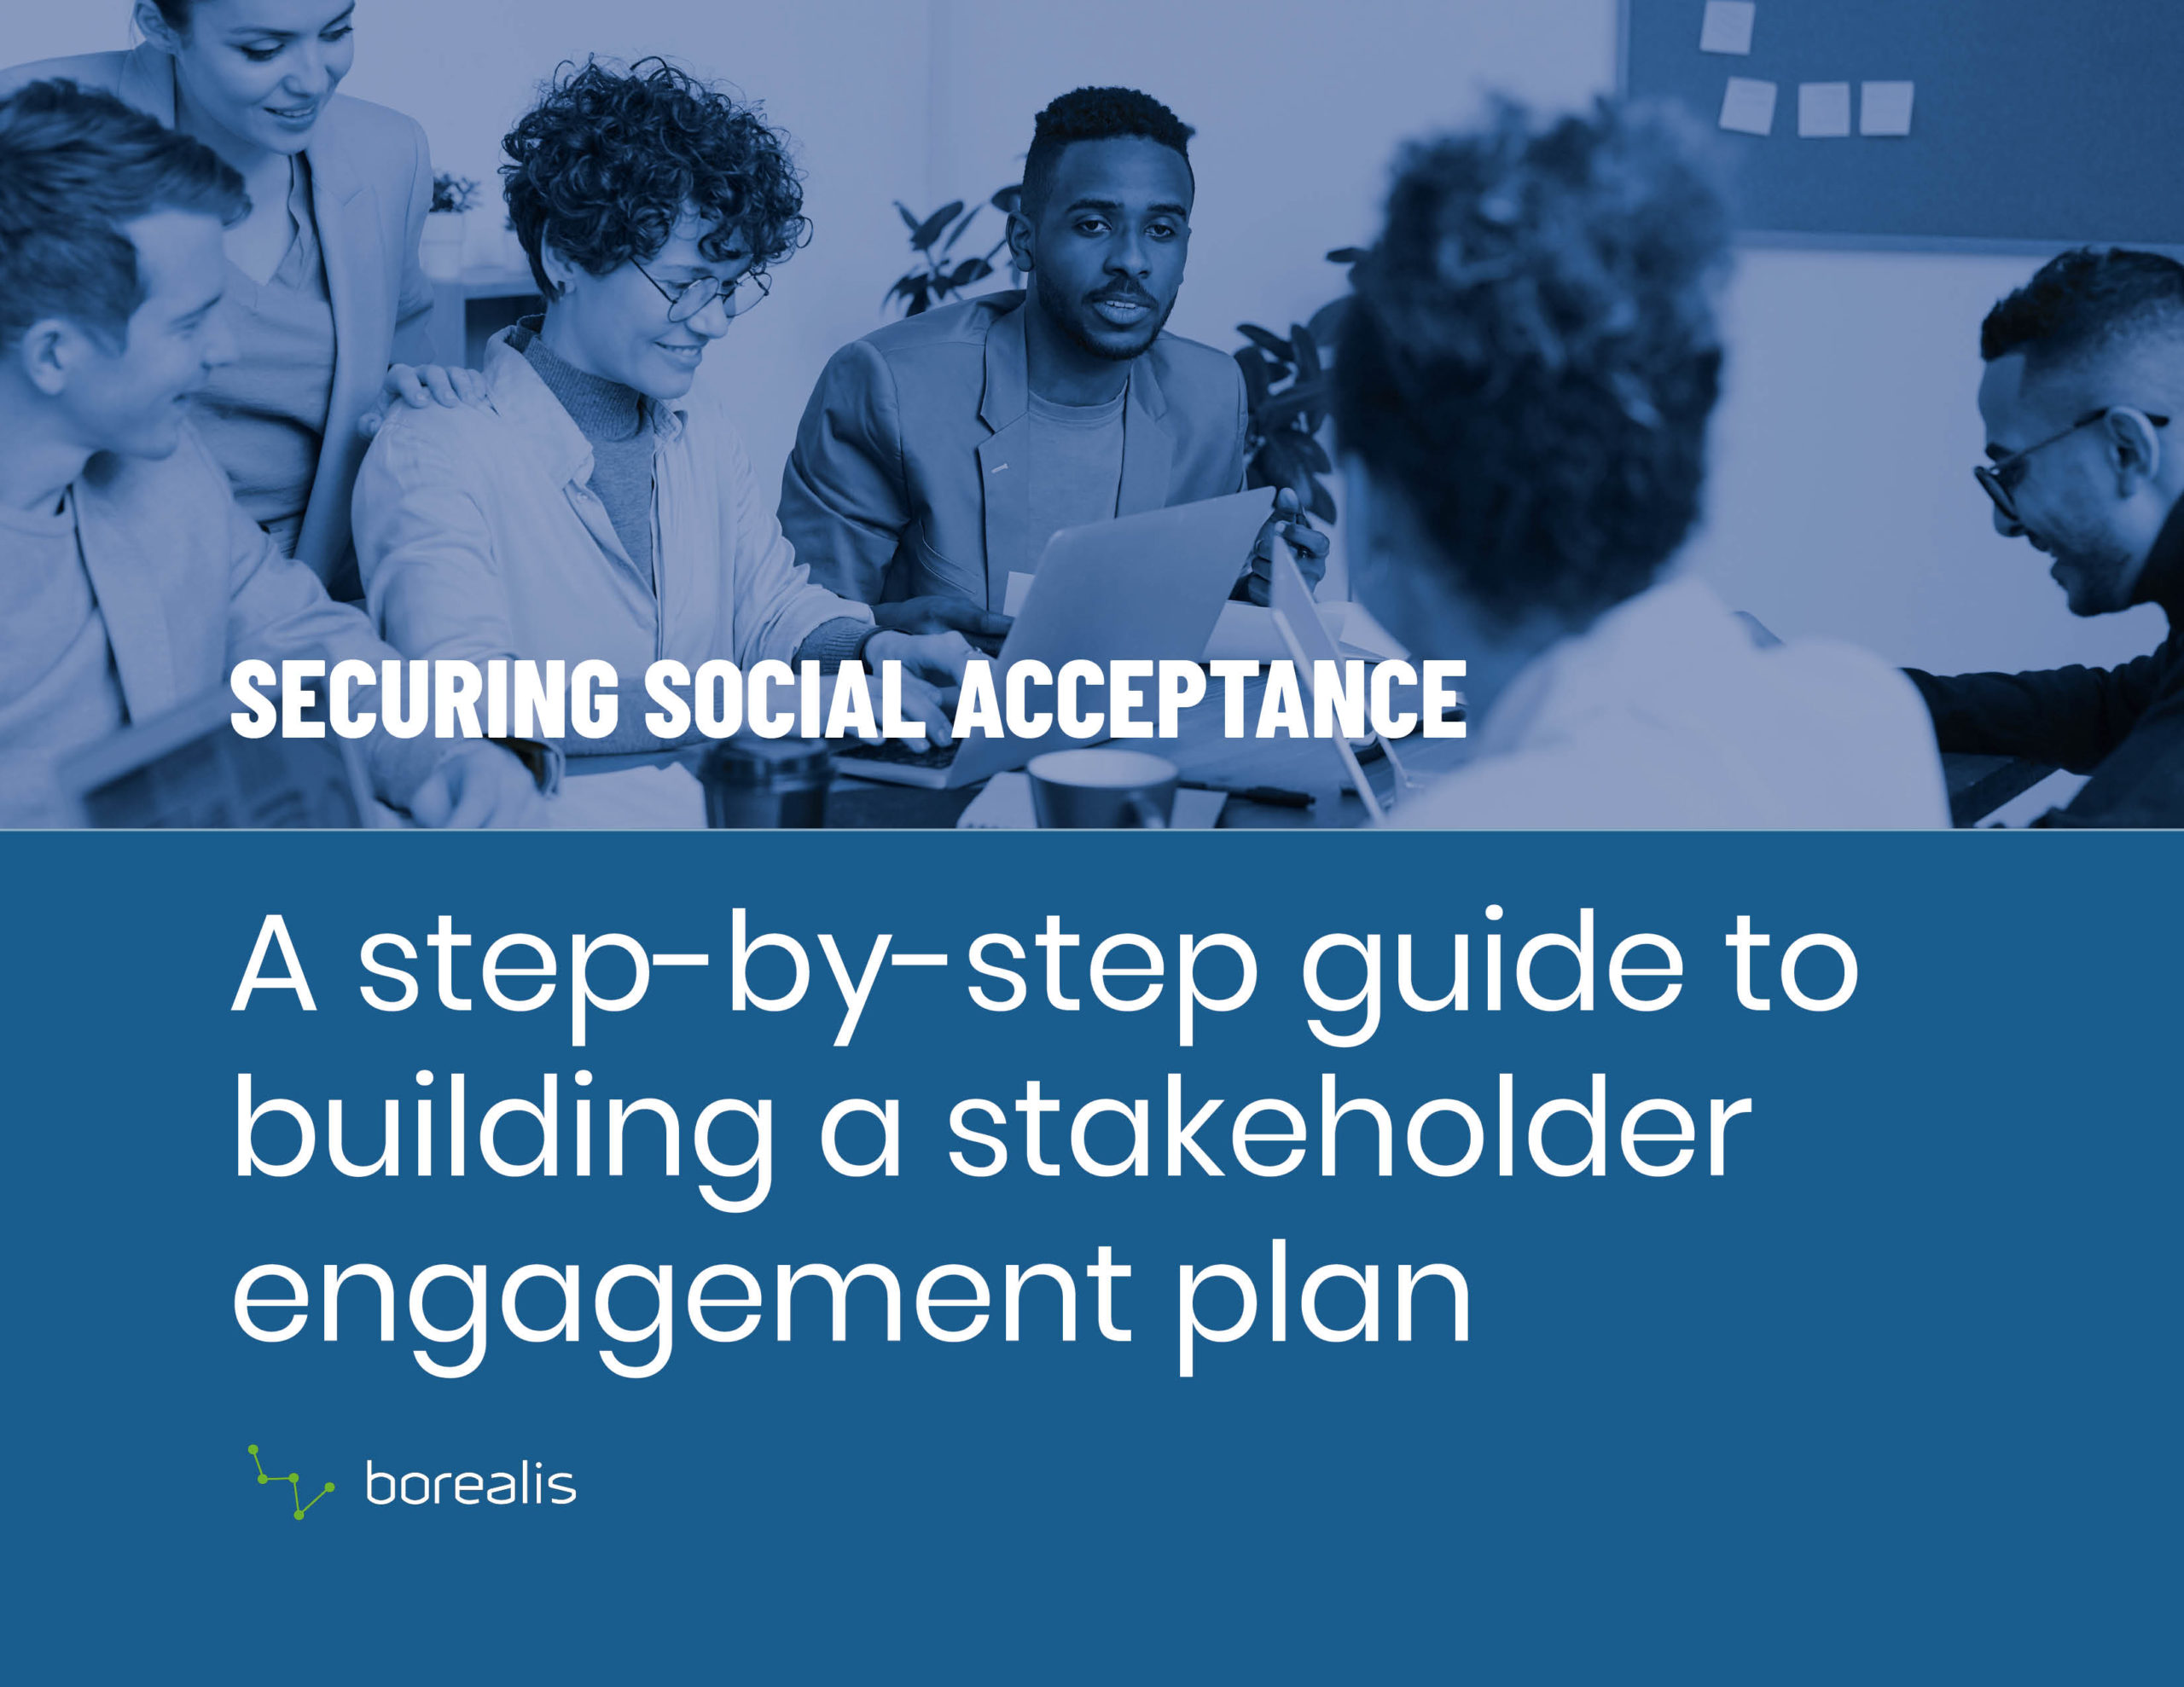 A step-by-step guide to building an Engagement Plan